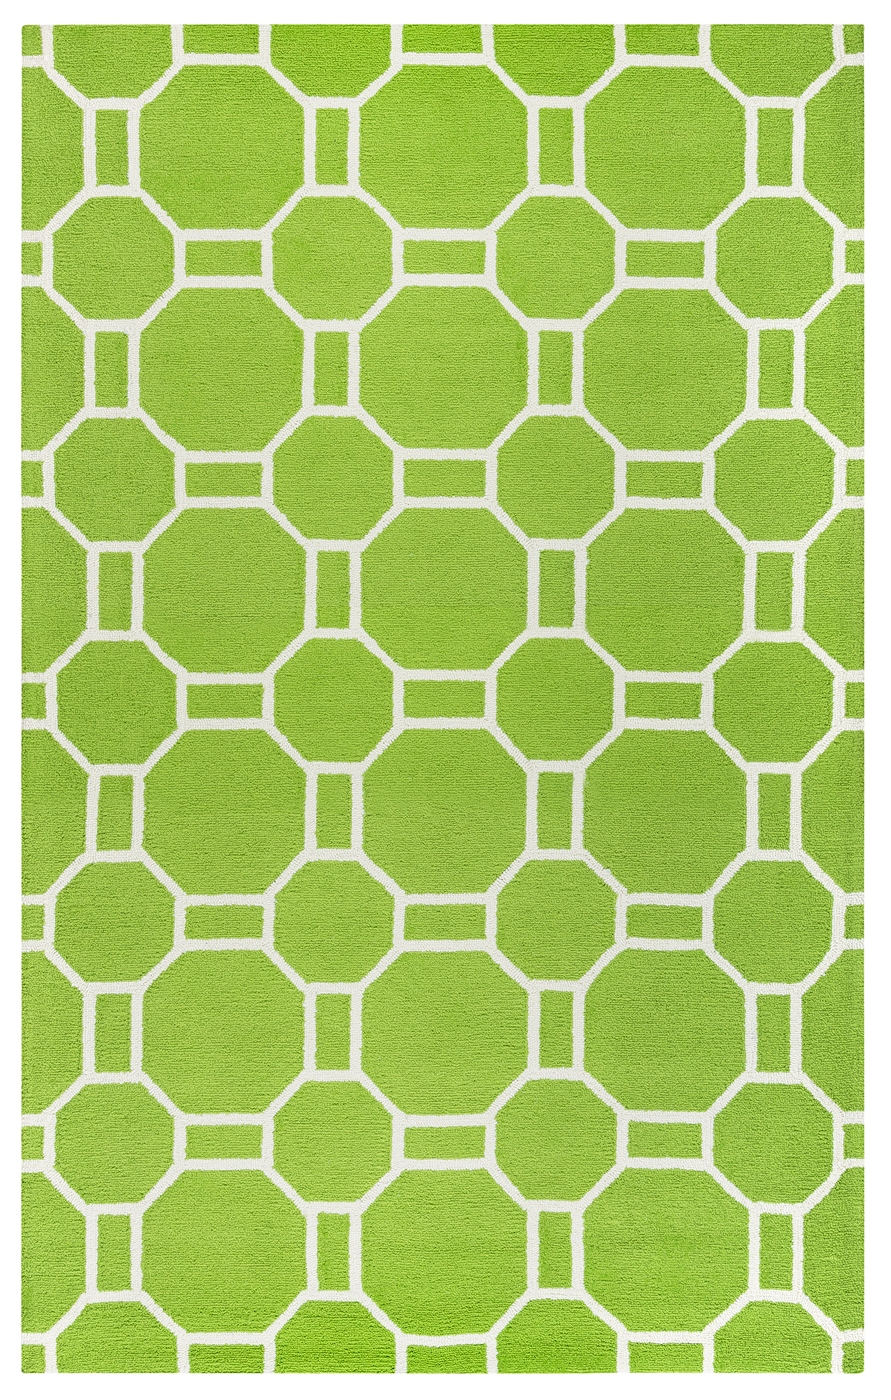 Azzura Hill Geometric Pattern Area Rug In Lime Amp Ivory 9